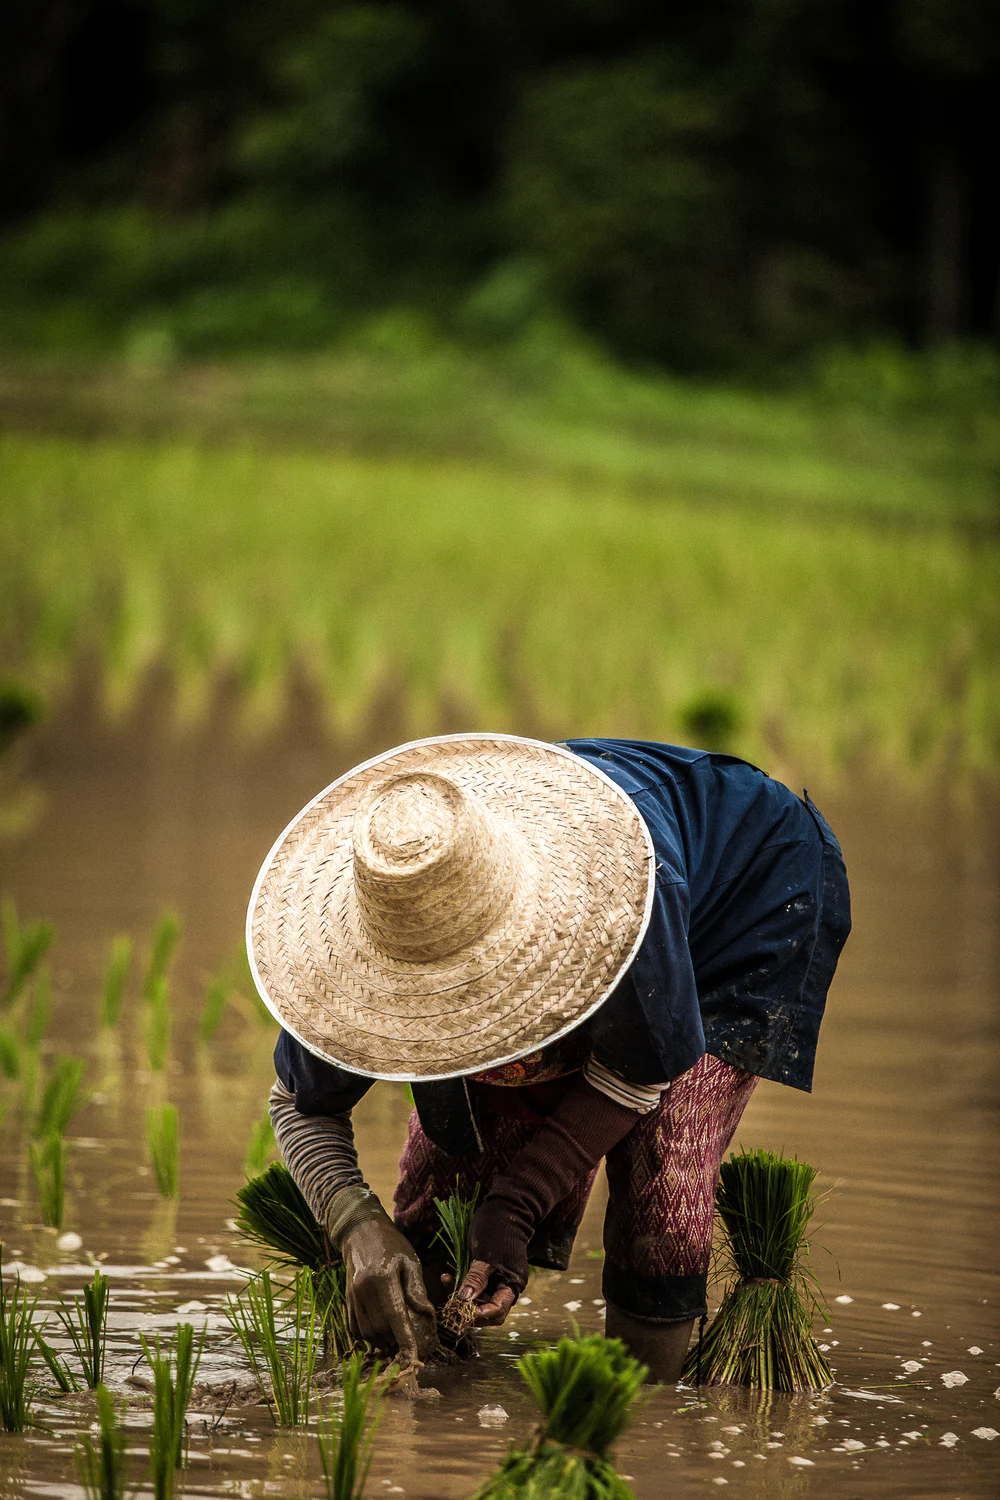 500 Thailand Pictures Hd Download Free Images On Unsplash Farmer Thailand Pictures Silhouette Photos